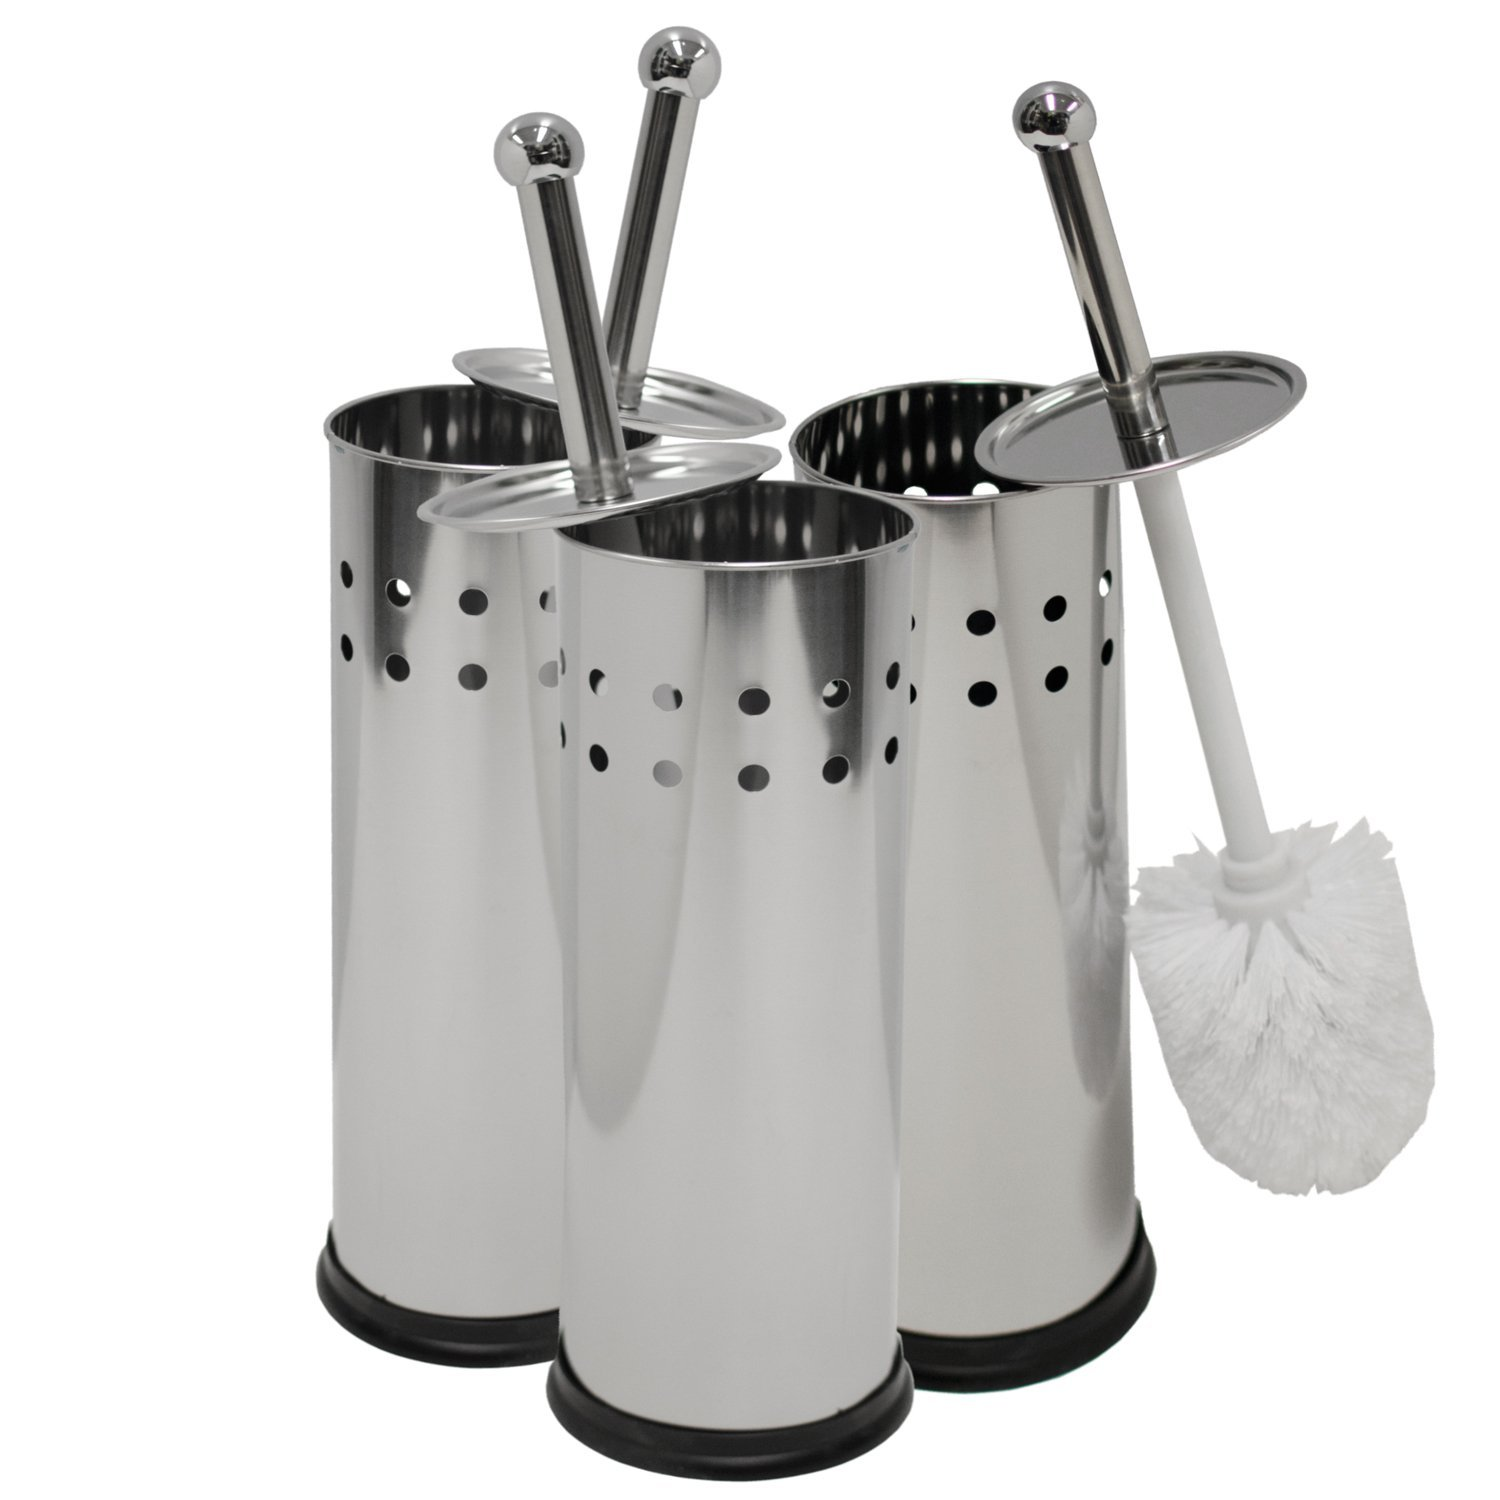 Oasis Collection Toilet Brush & Holder, Stainless Steel Circle Punch TB029915 Set of 3